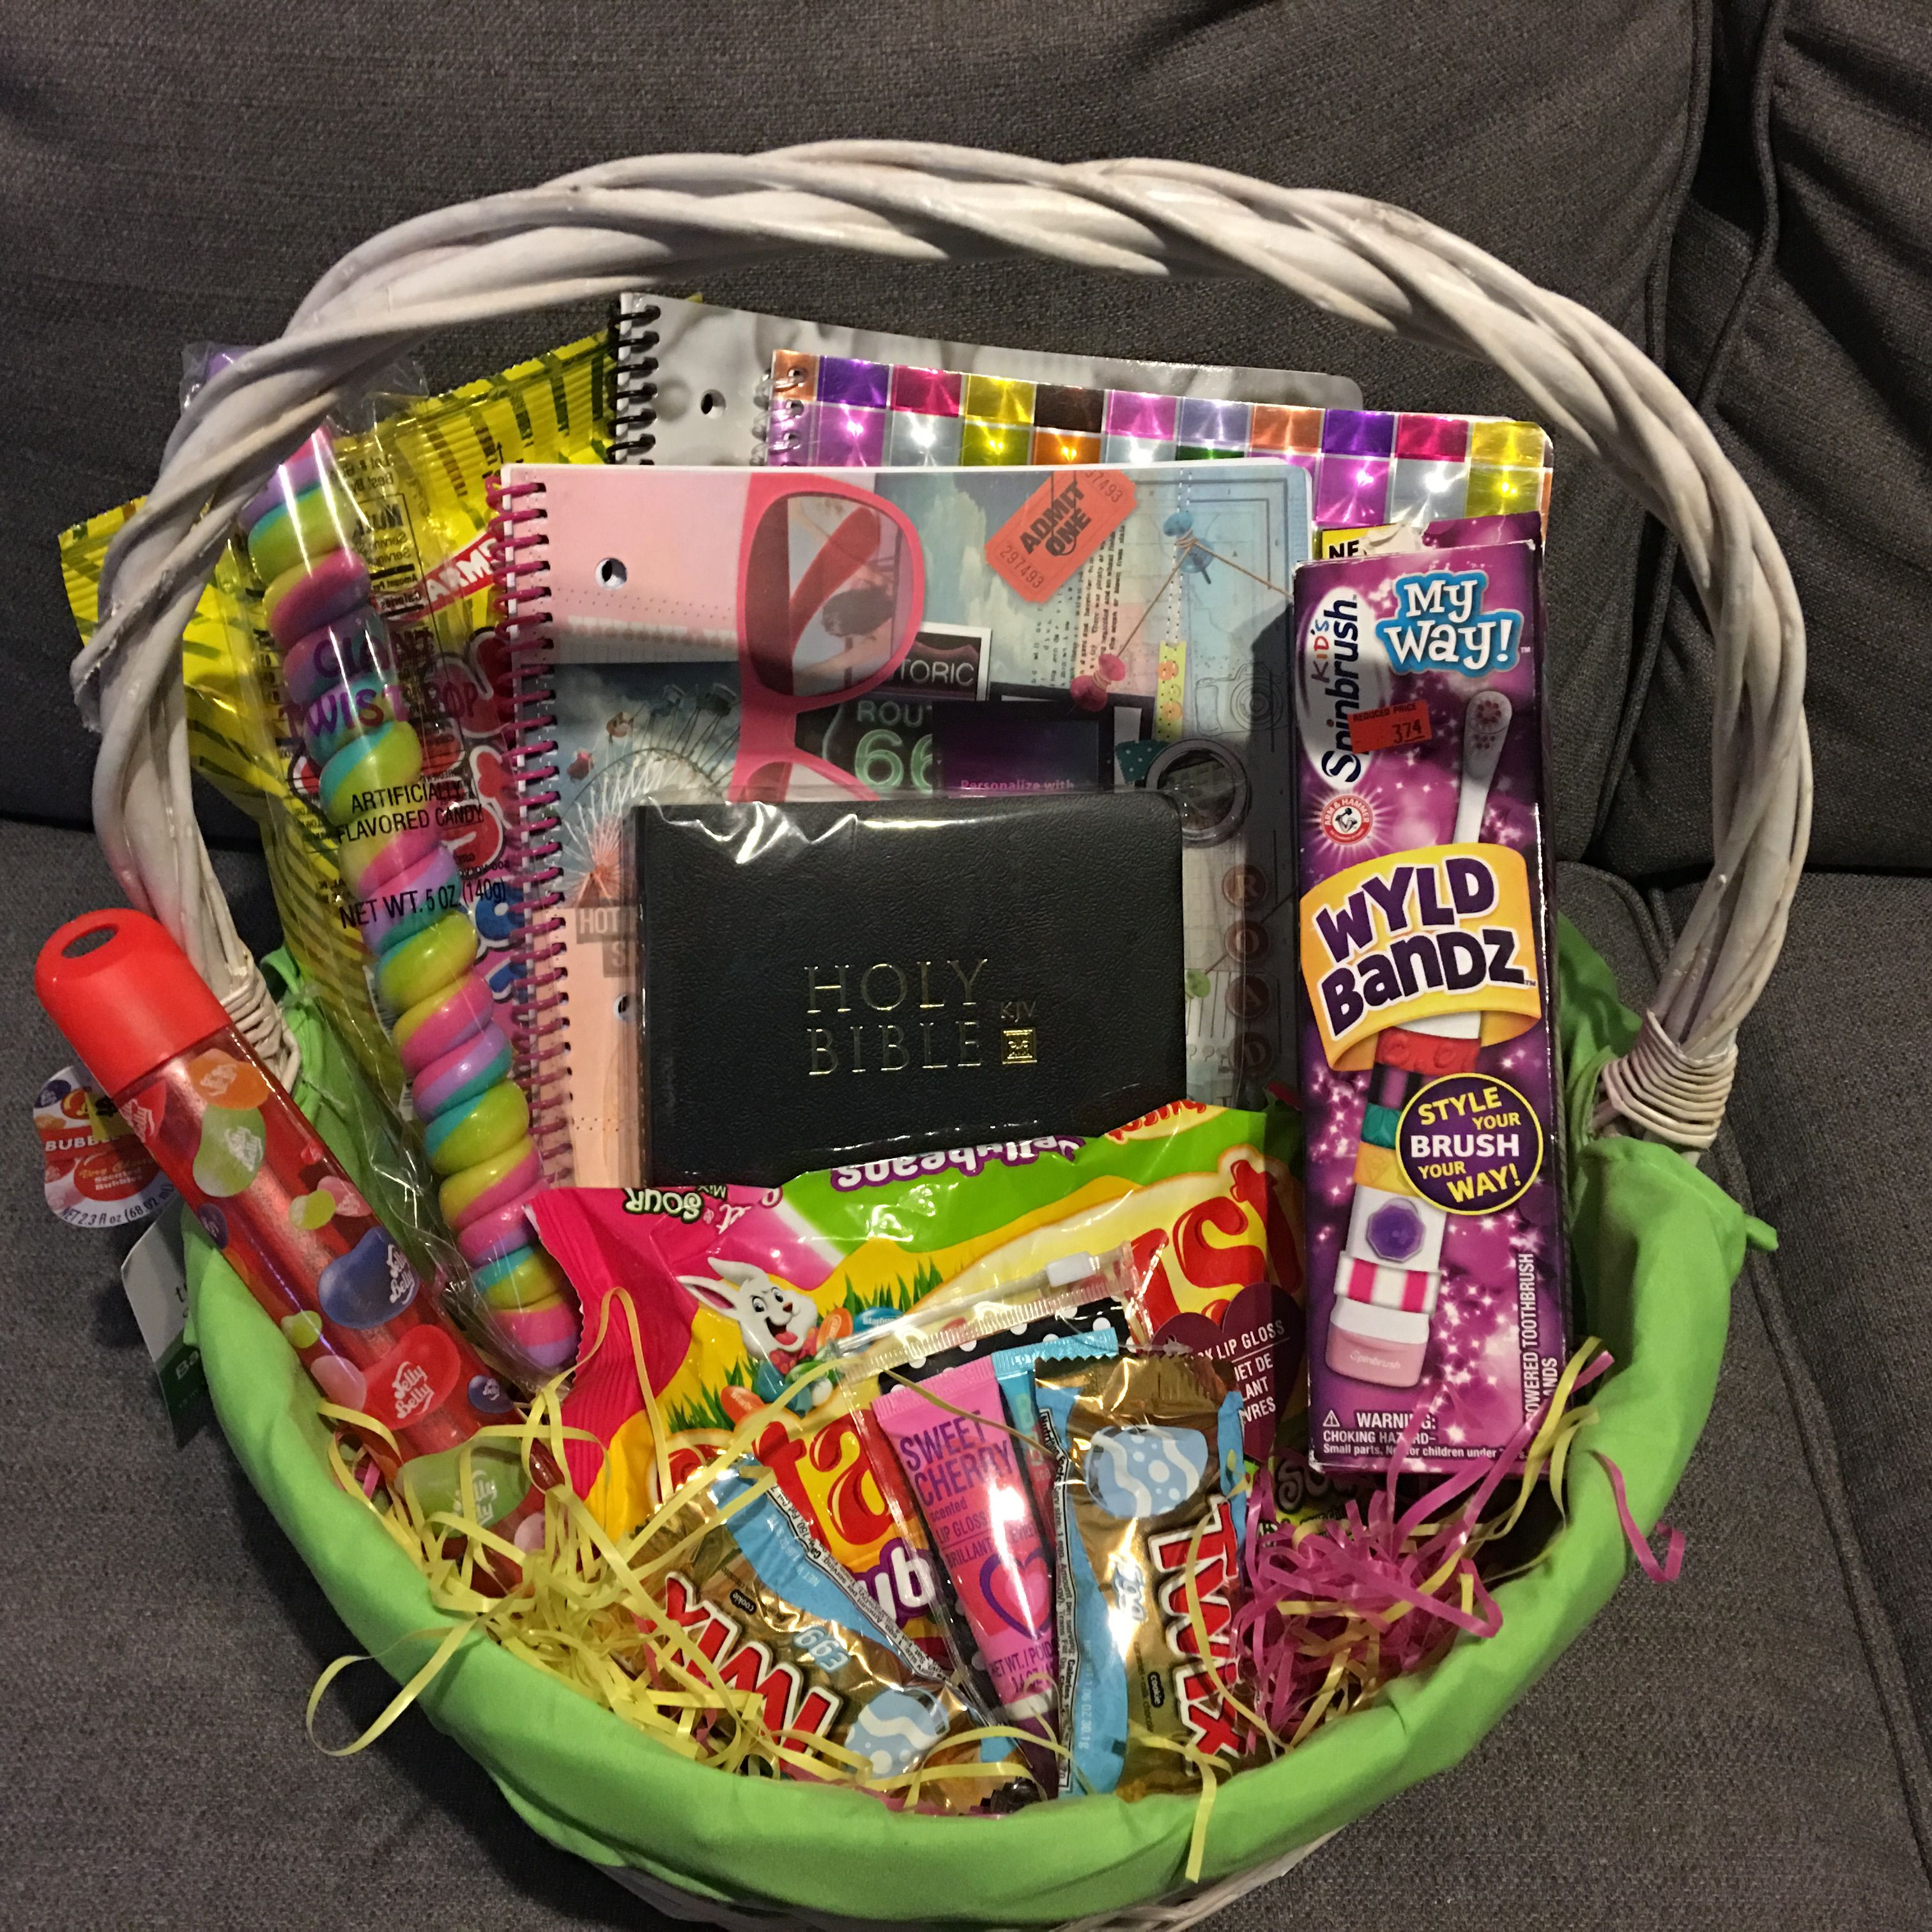 Ten Year Old Girl Easter Basket Ideas Includes Bible Cool Notebooks Electric Toothbrush Lip Gloss Scente Girls Easter Basket Easter Baskets Cool Notebooks